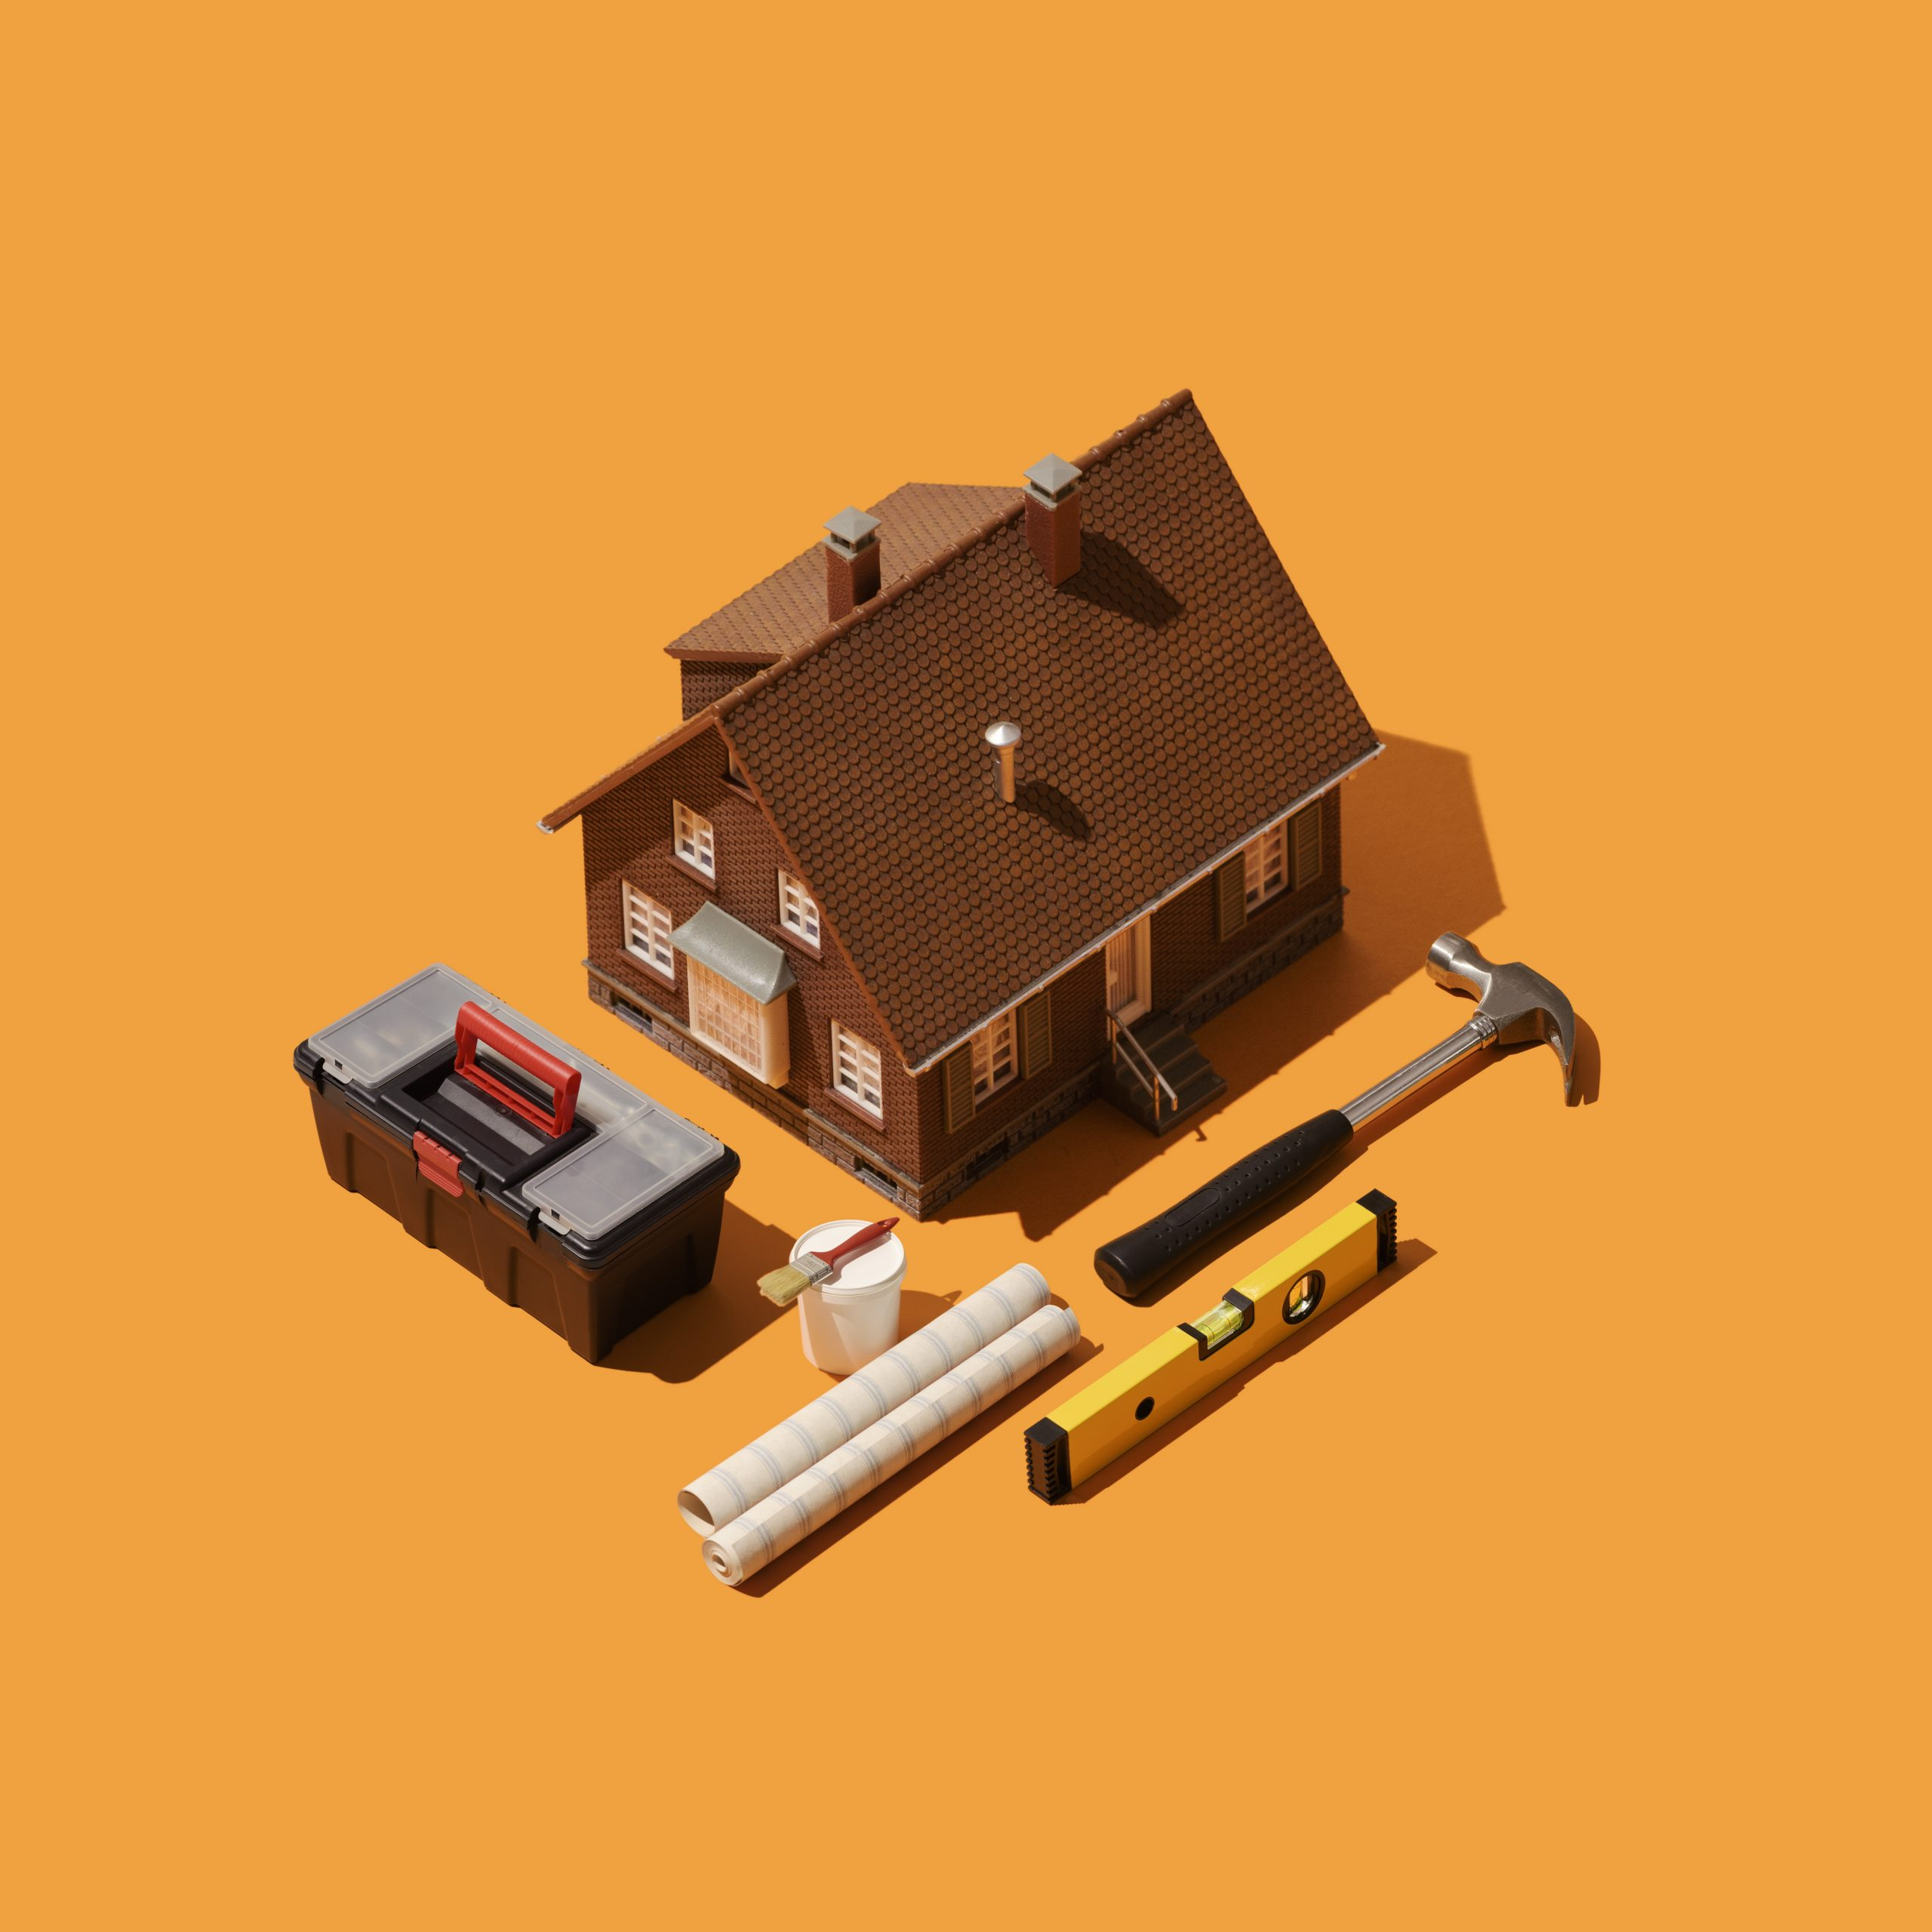 Picture of Tools for Home Renovation